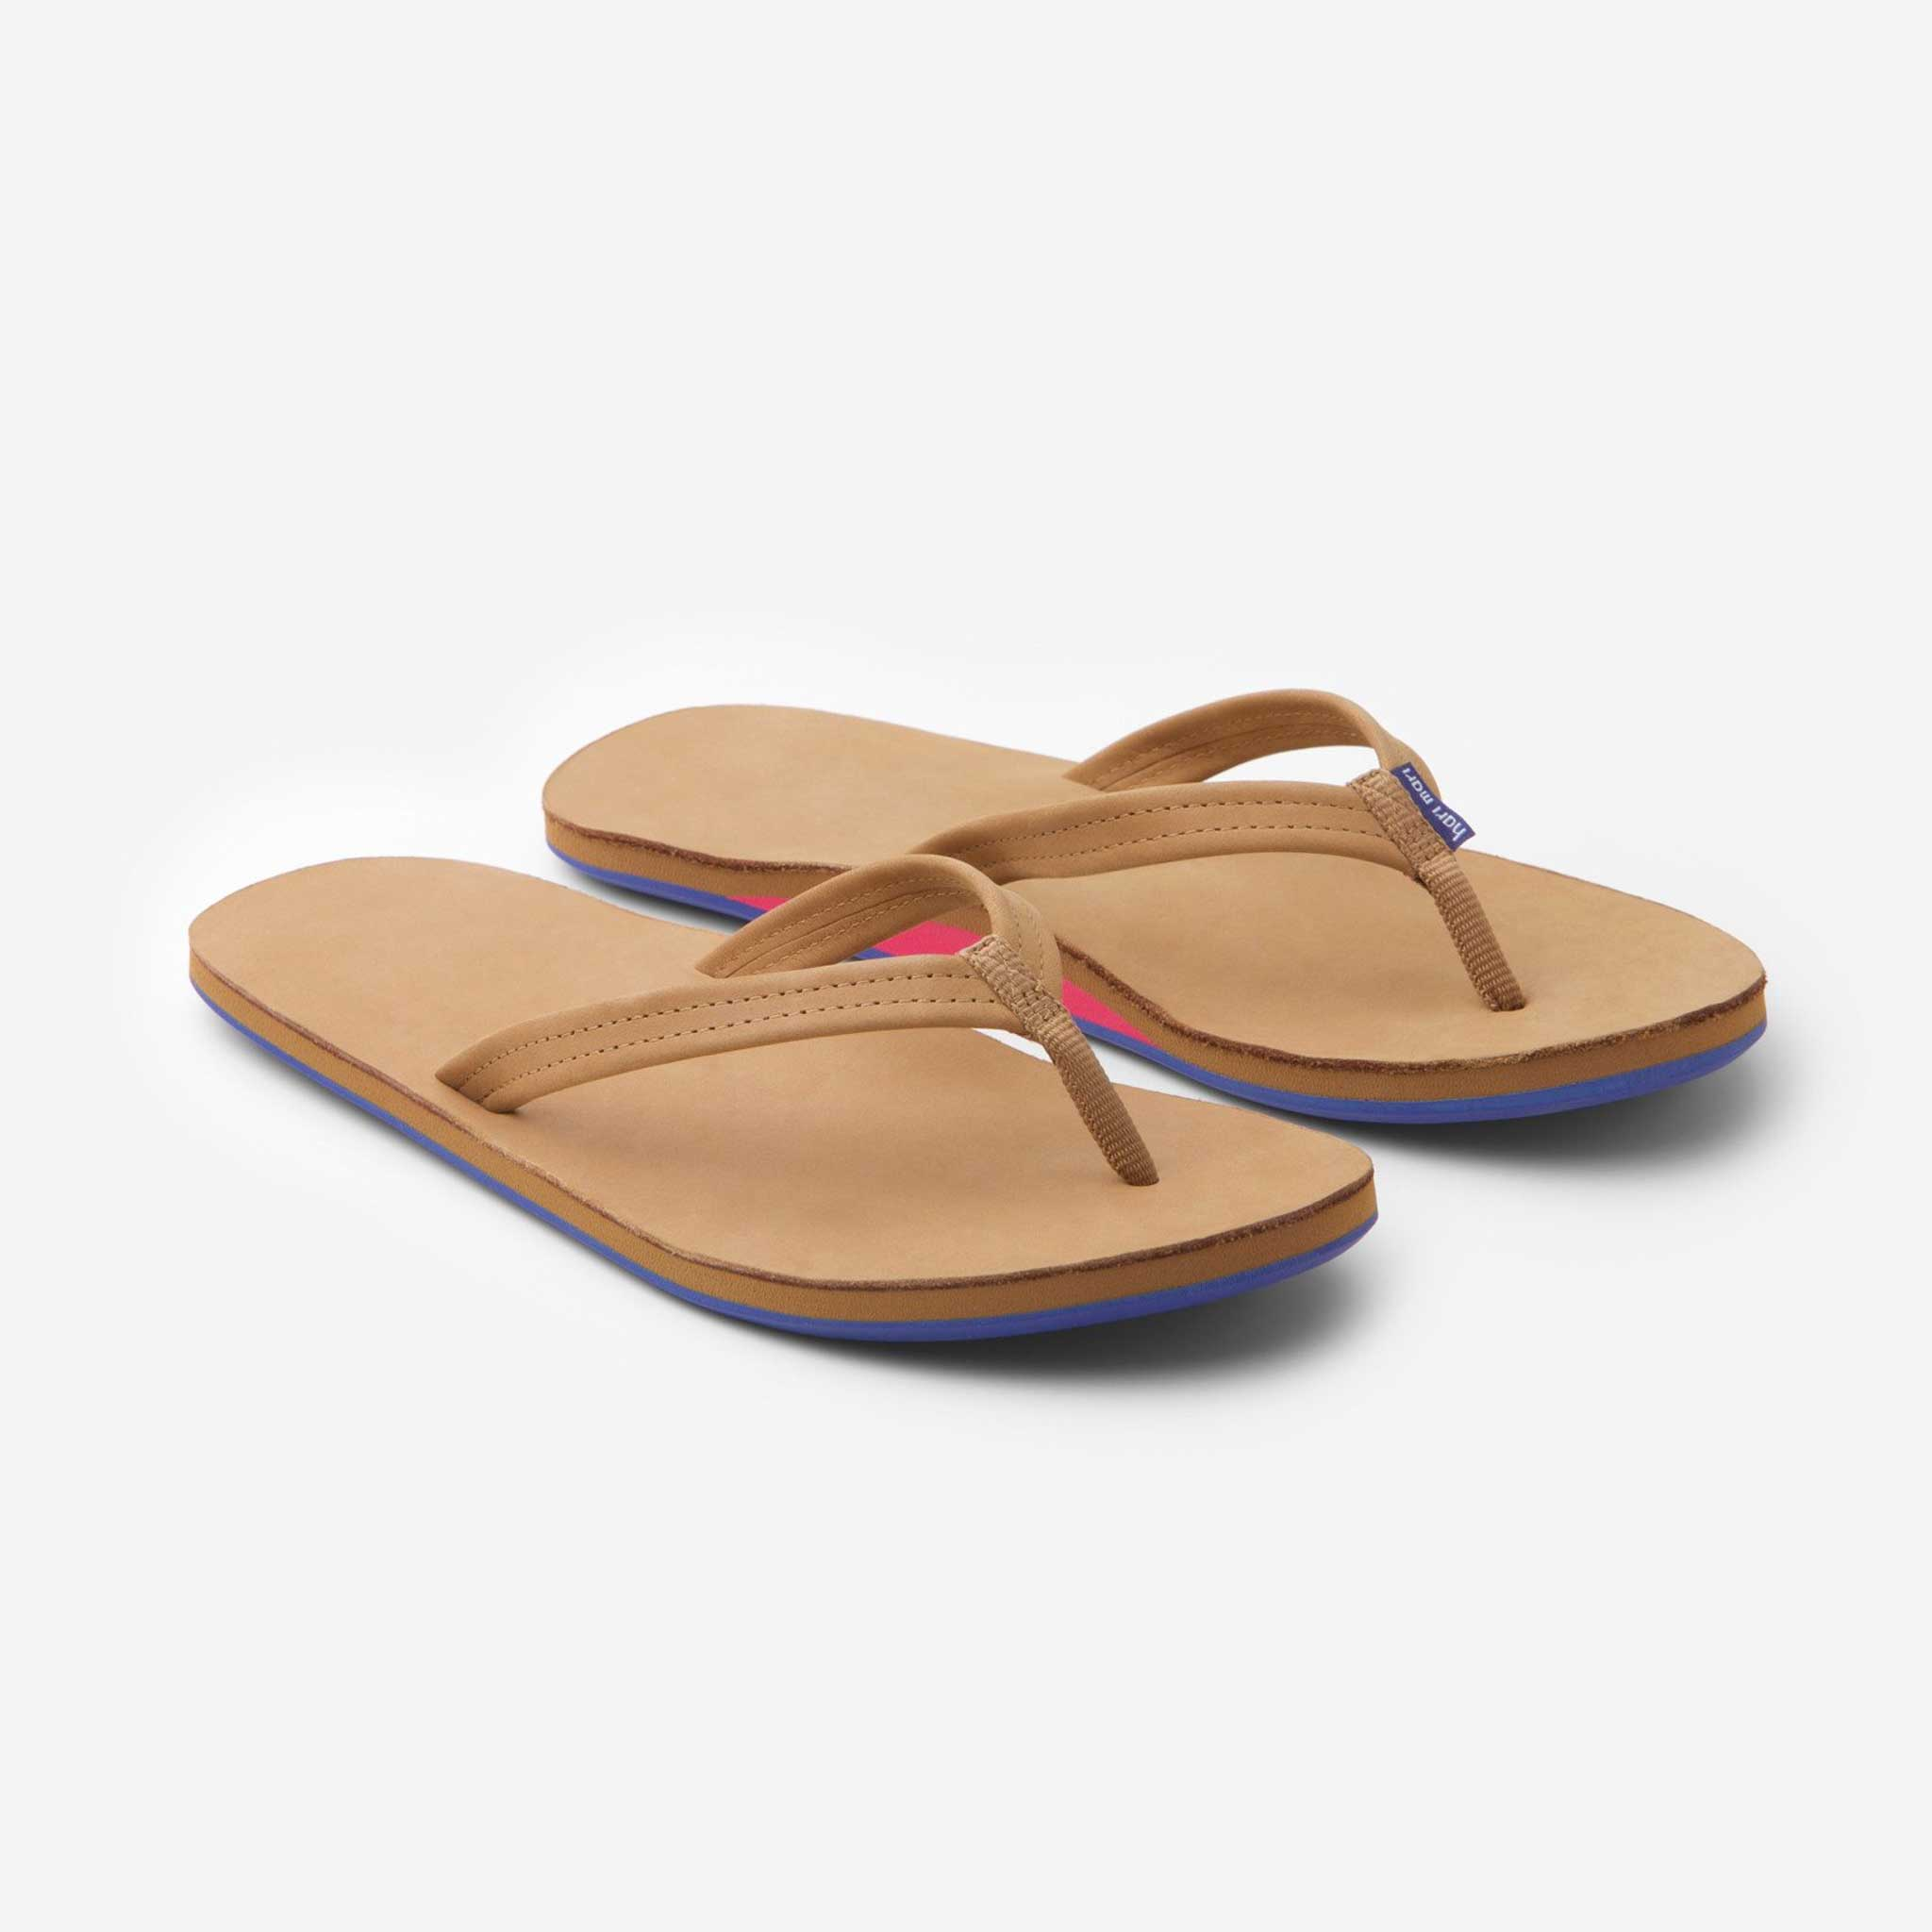 Fields - Women's - Tan / Blue - 45 Degree View